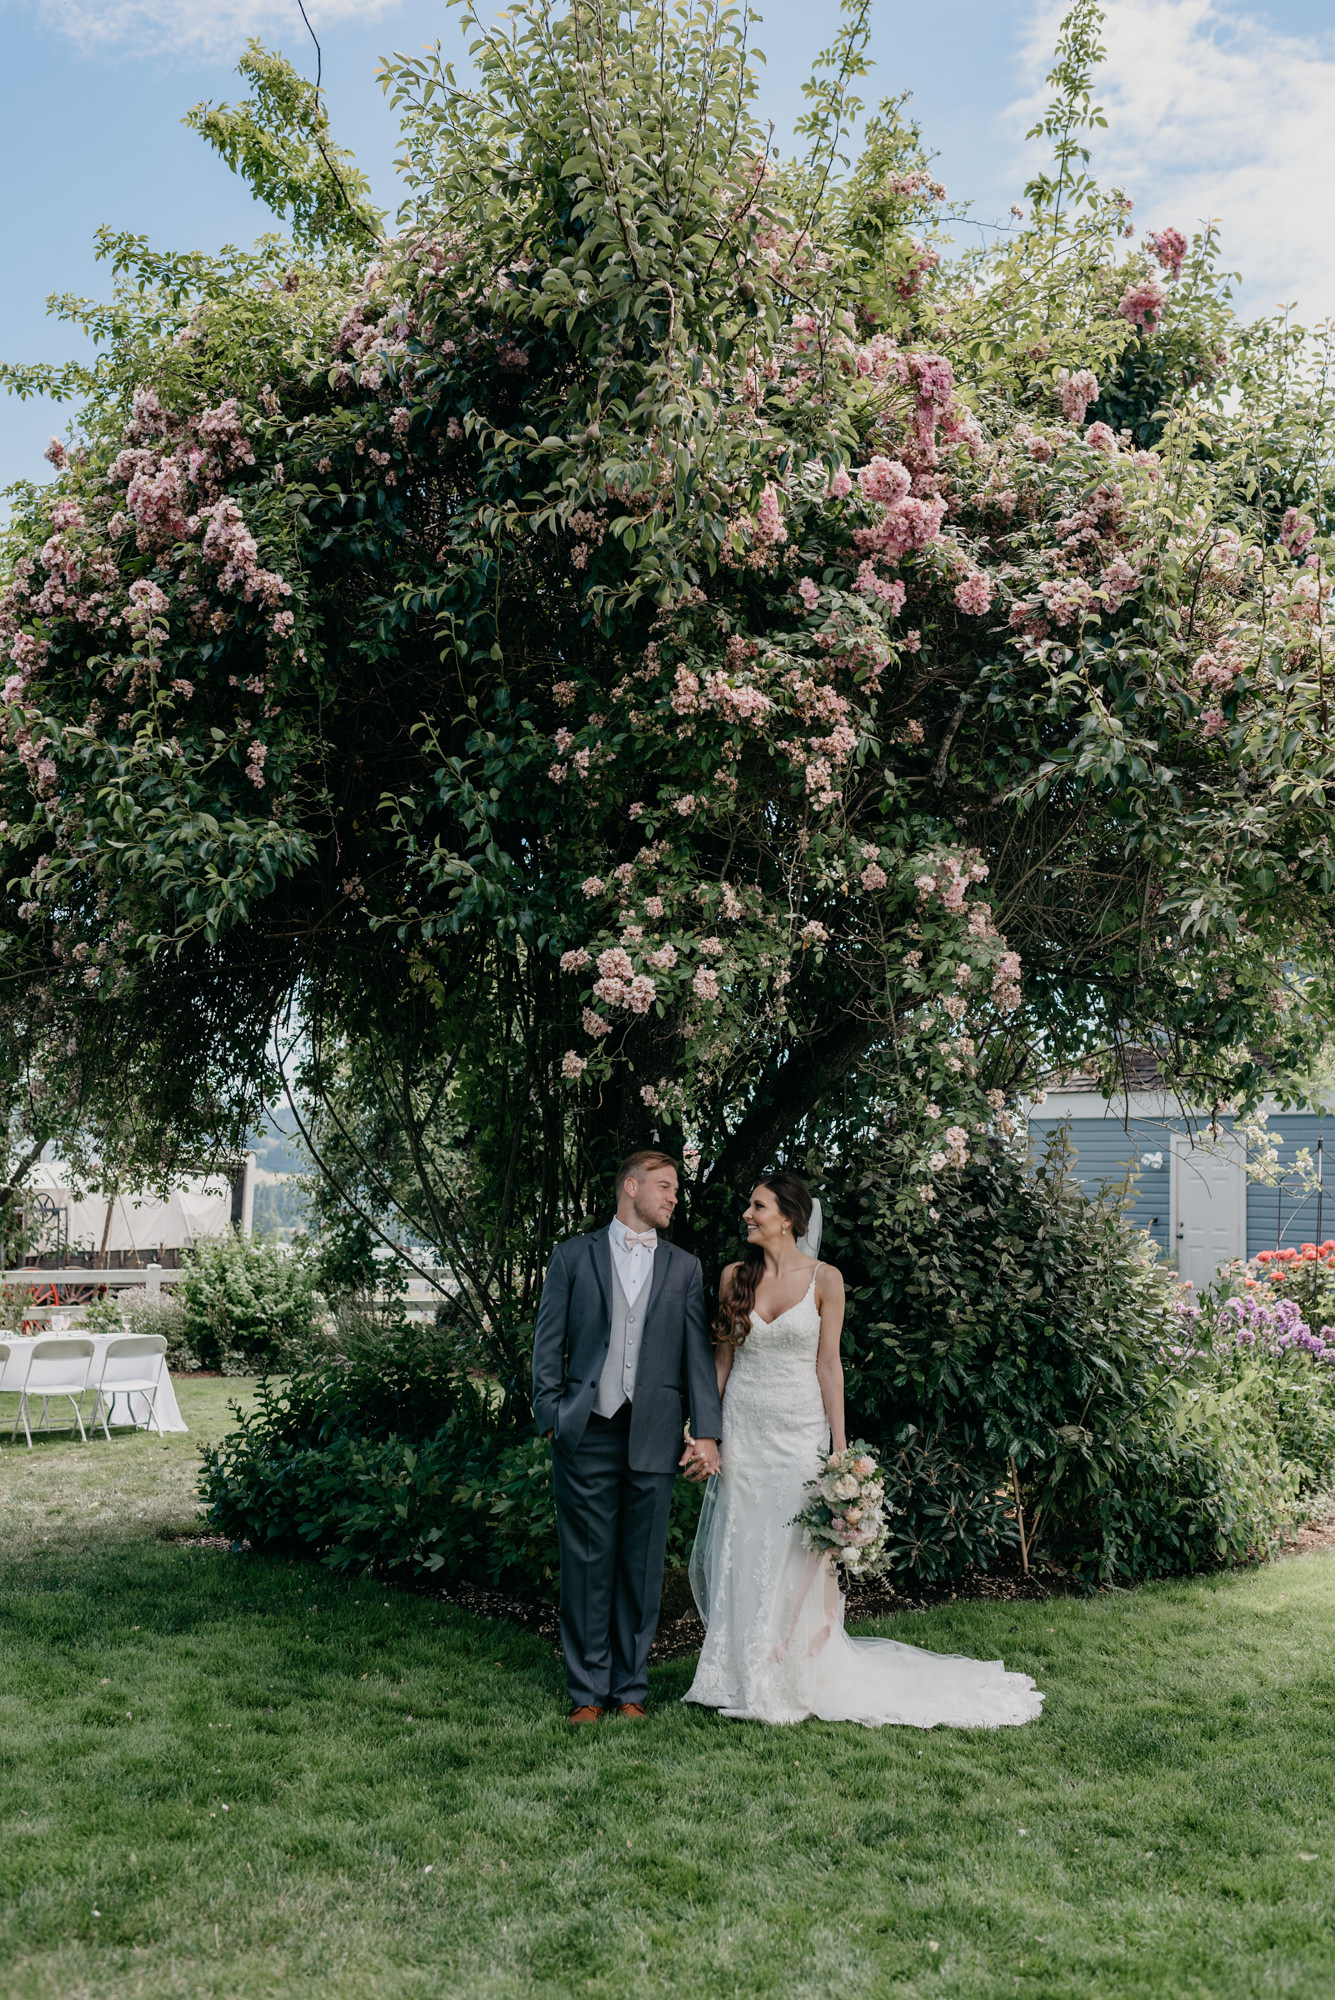 83-lake-oswego-wedding-portland-couple-rose-tree.jpg